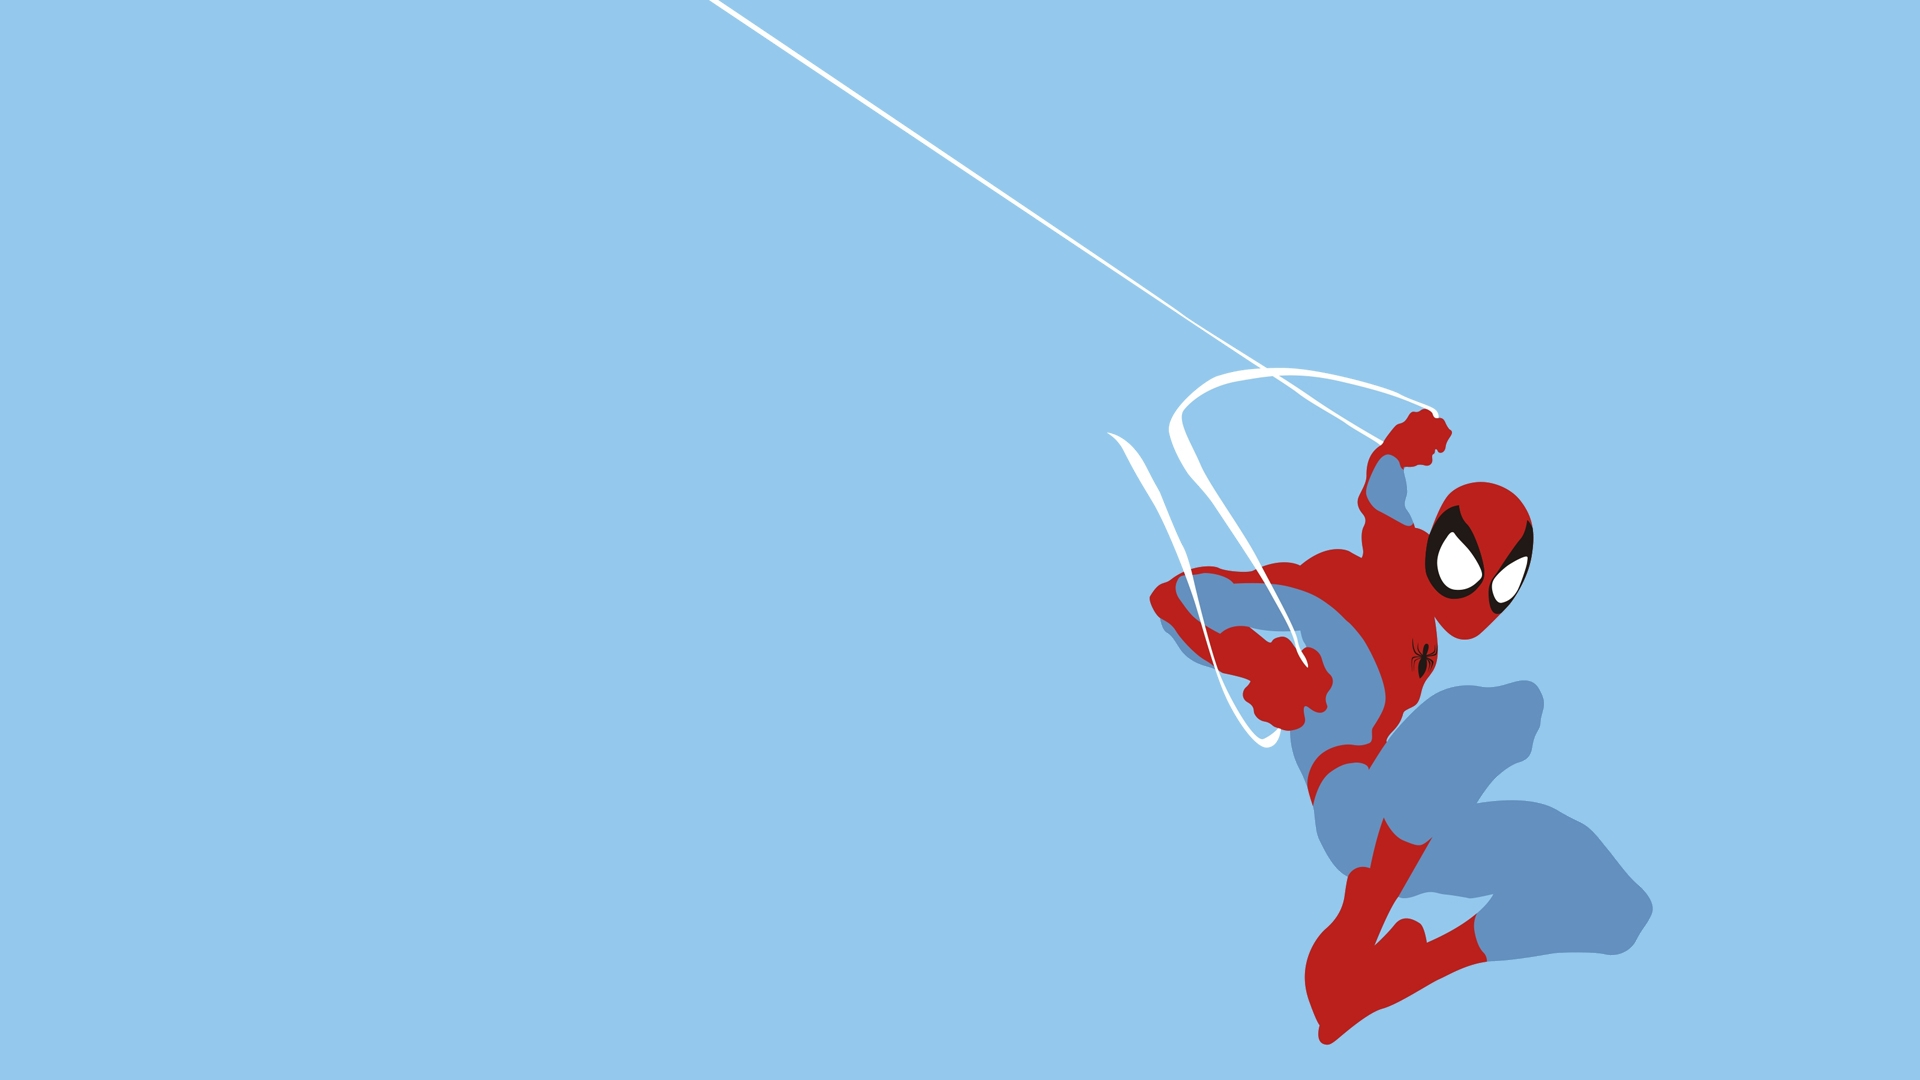 spiderman wallpaper 37 - [1920x1080]